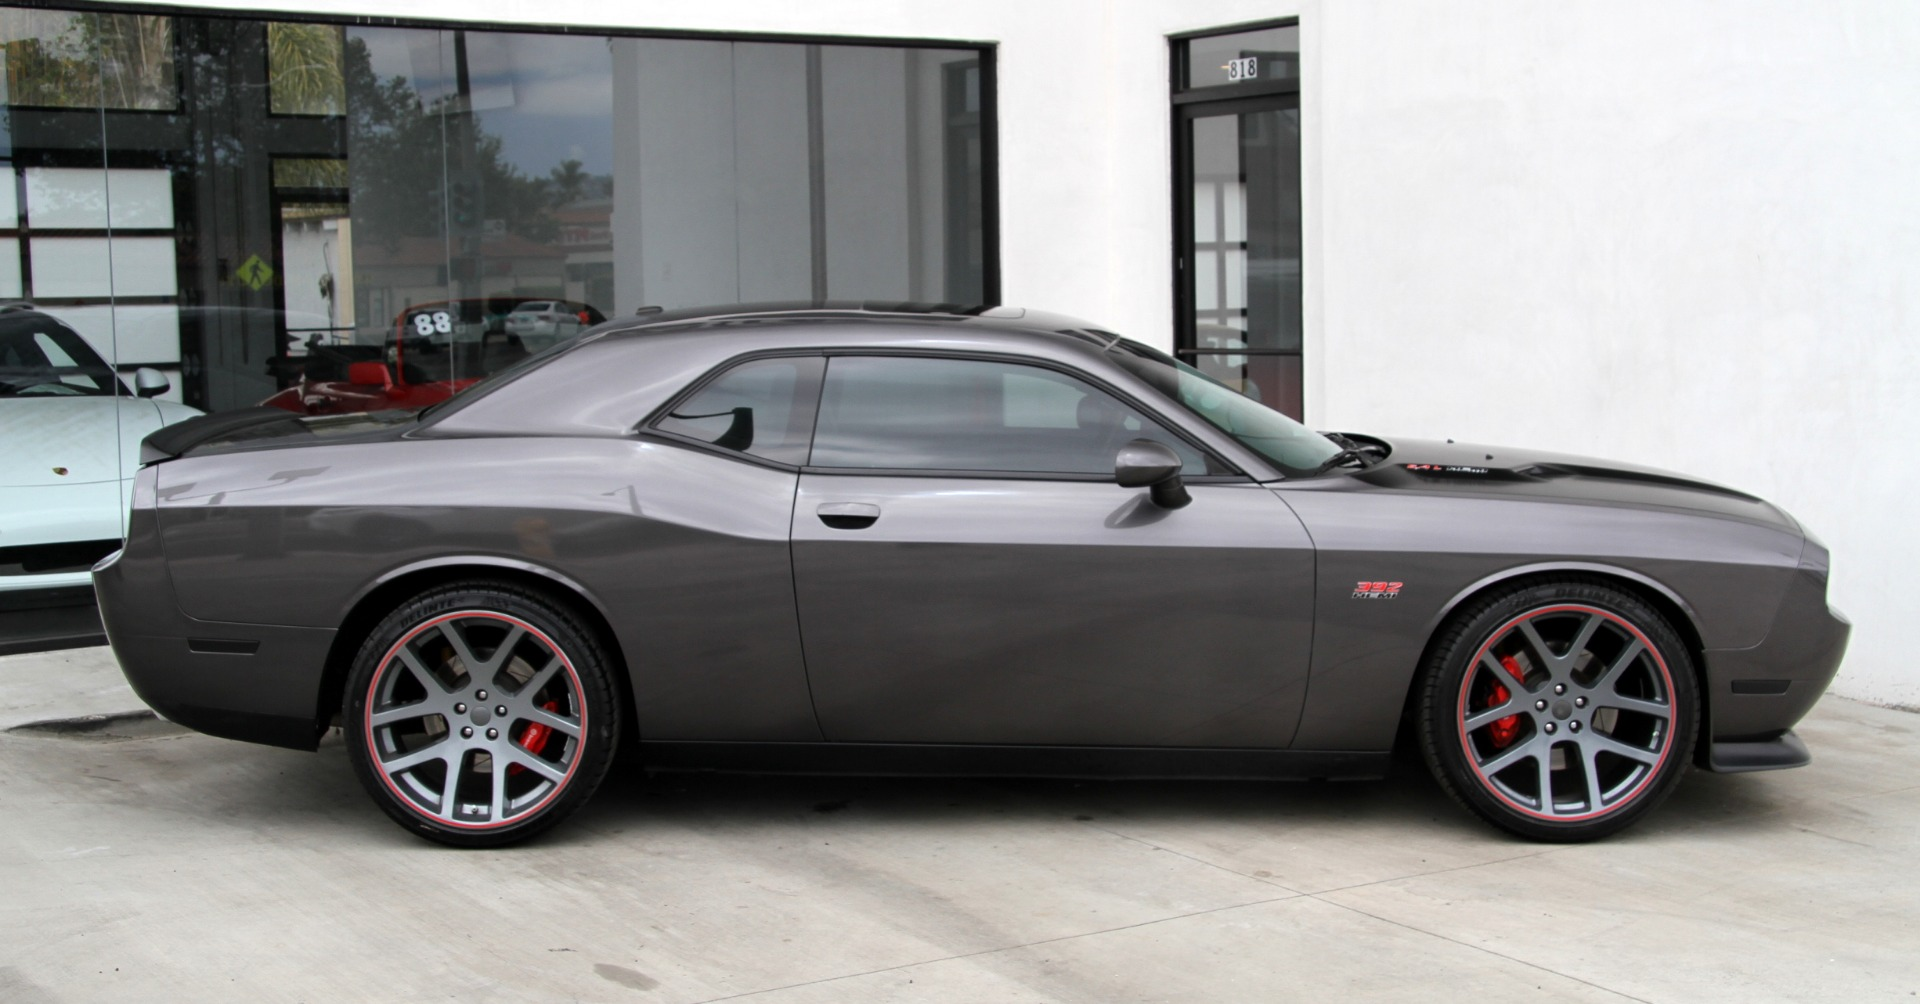 Dodge Challenger For Sale Near Me >> 2013 Dodge Challenger SRT8 392 Stock # 6076C for sale near ...